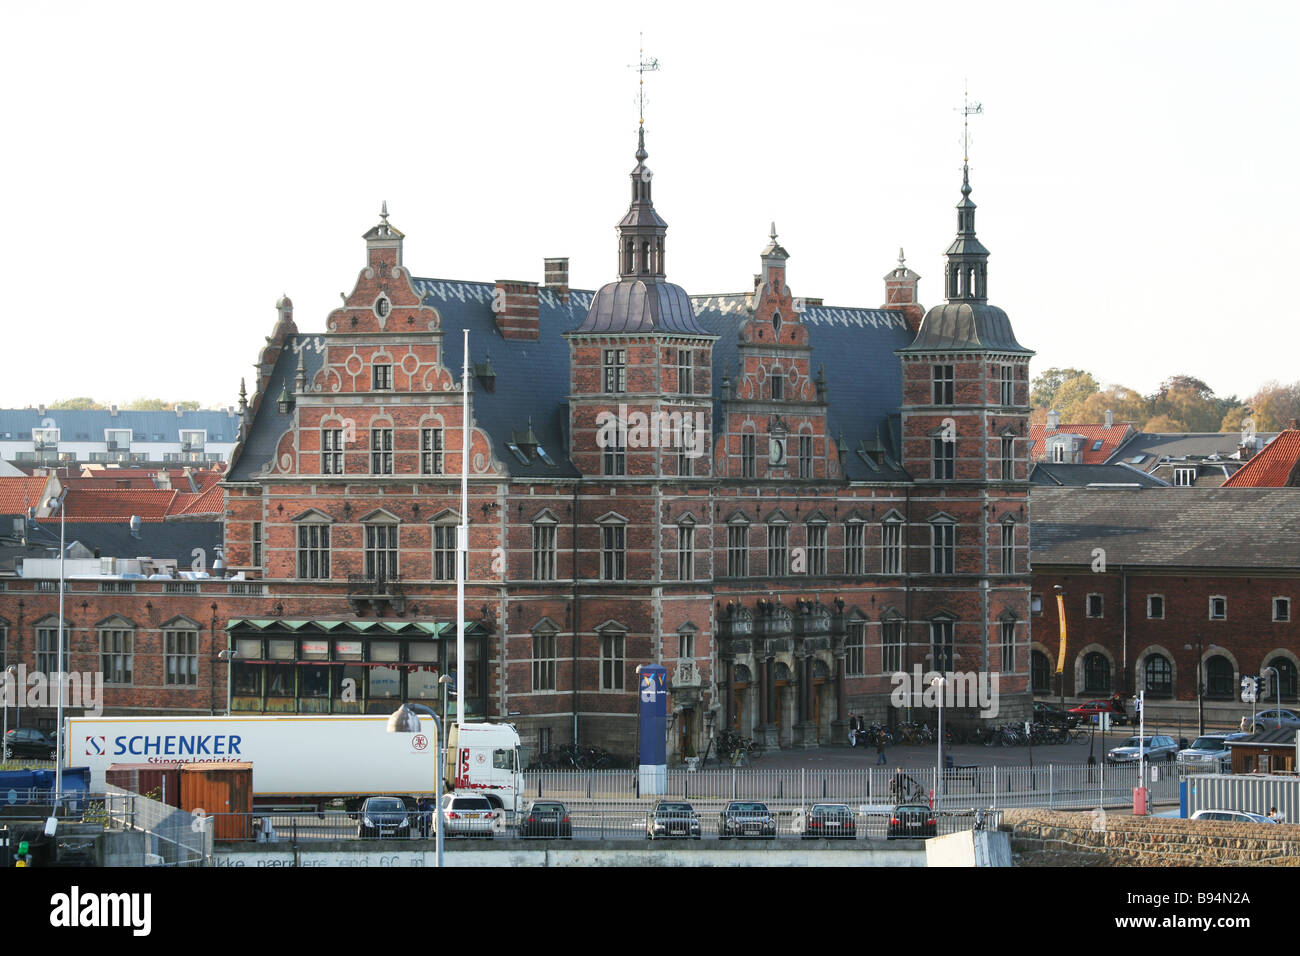 Elsinore. Denmark. Europe. - Stock Image